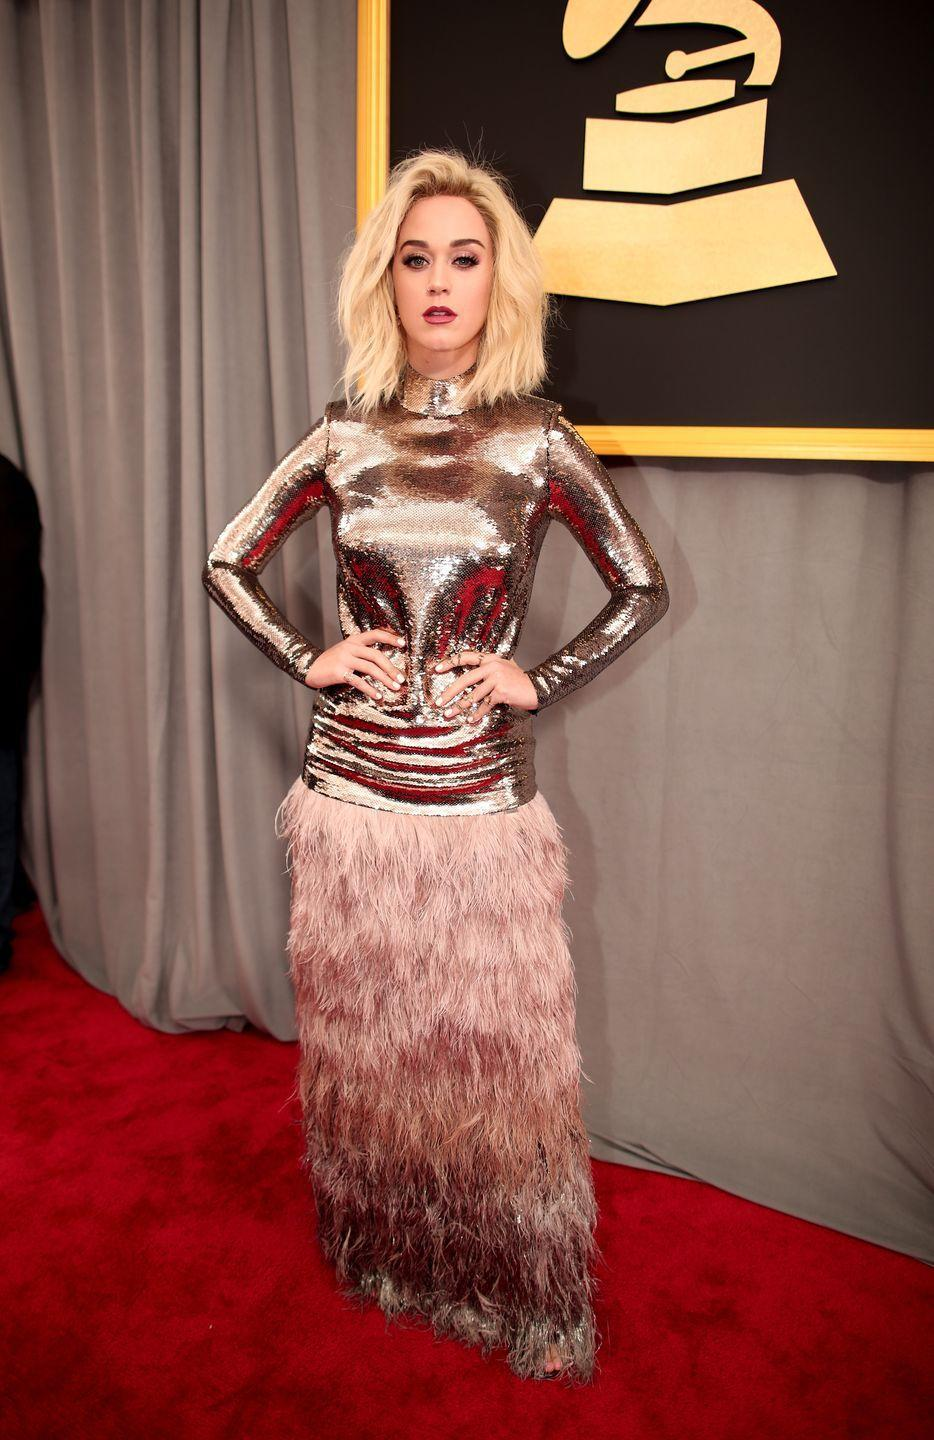 <p>Katy Perry attends The 59th GRAMMY Awards at STAPLES Center on February 12, 2017 in Los Angeles, California.</p>